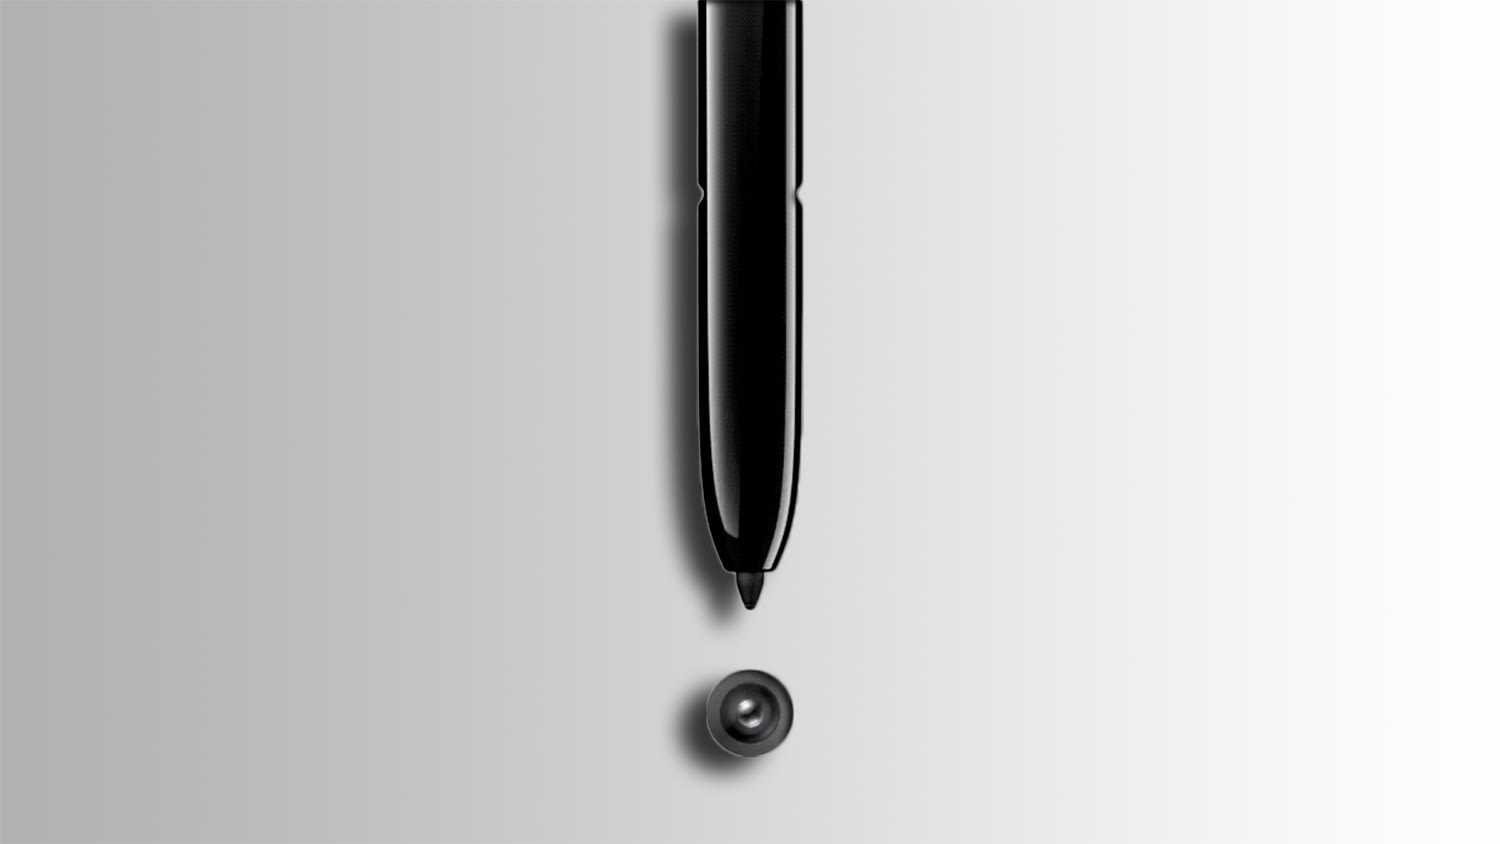 Samsung Galaxy Note 10 Launching on August 7 in New York